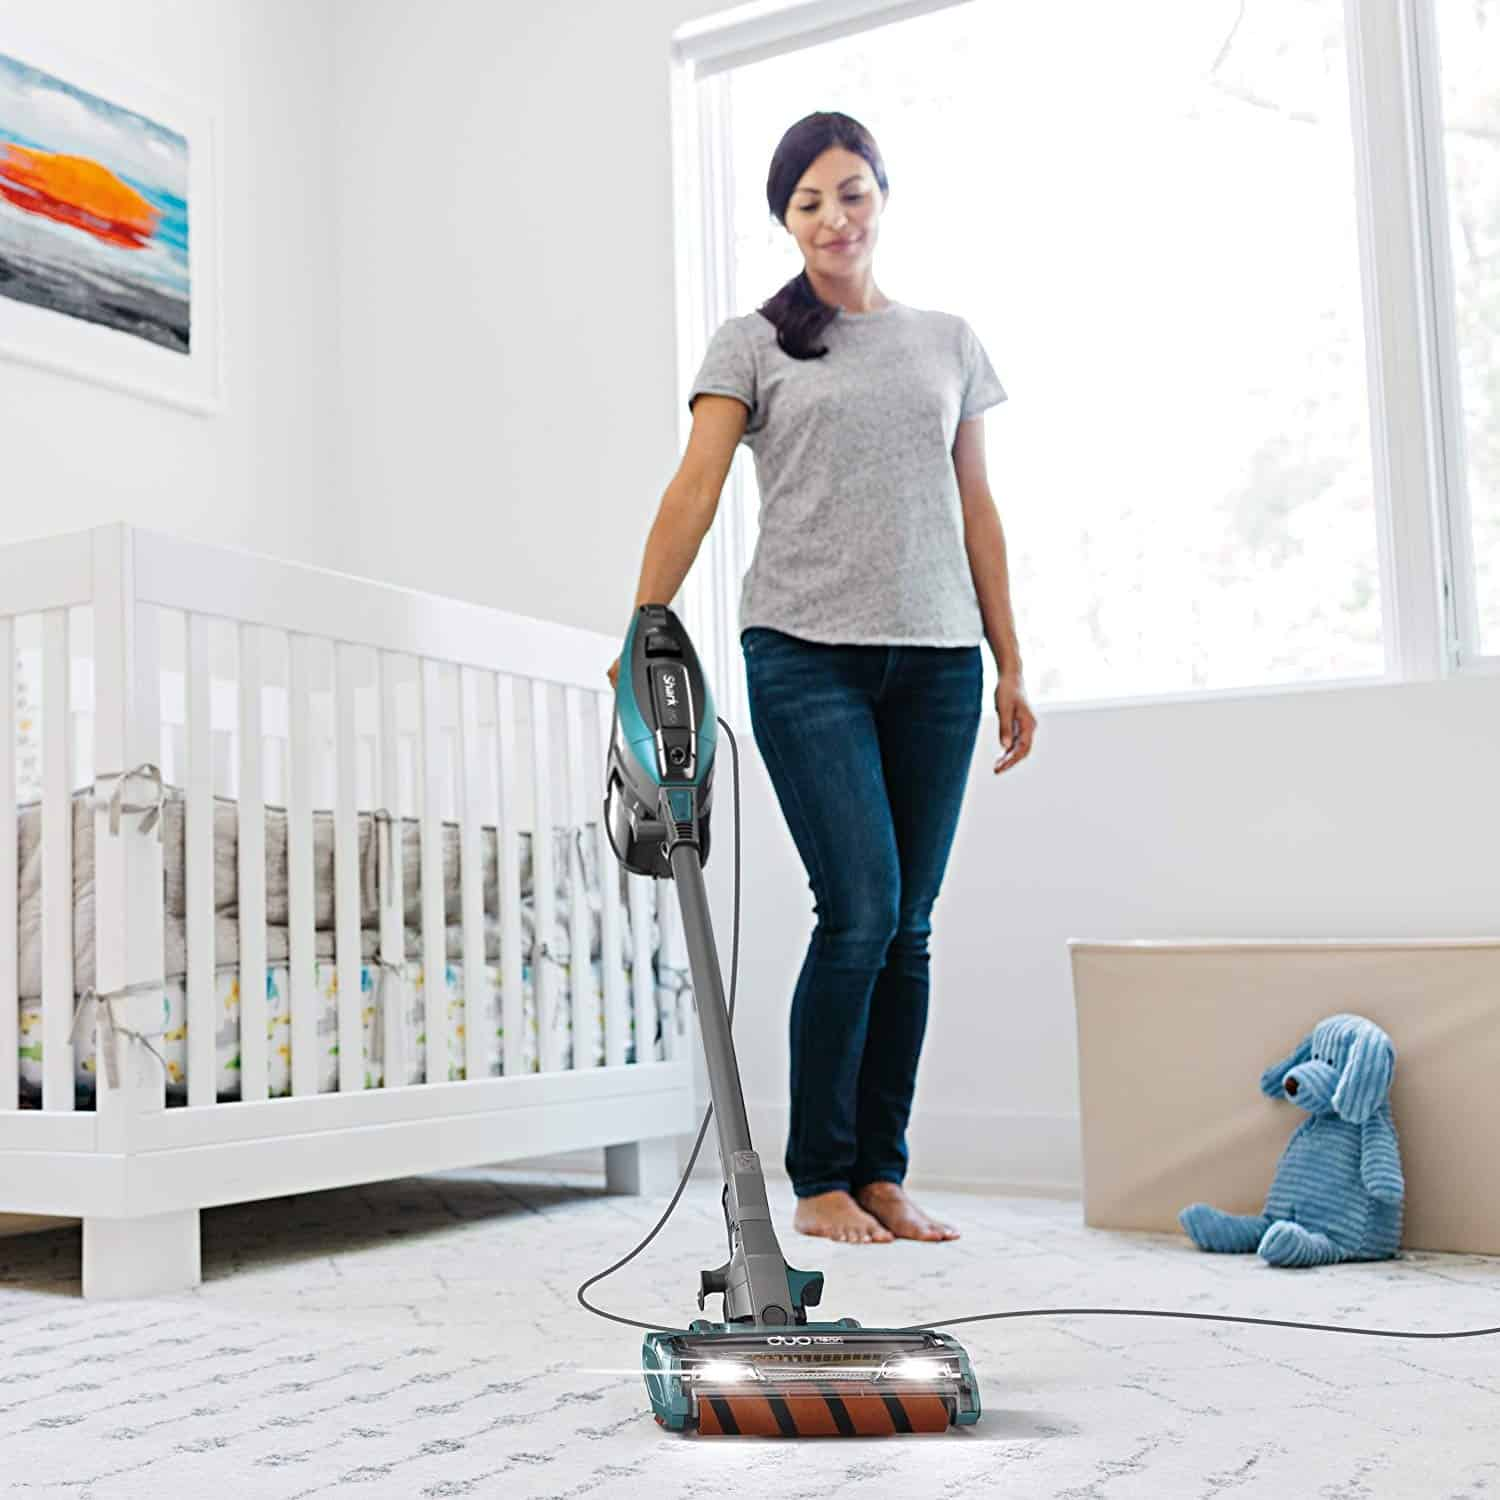 A person standing in a room, with Stick Vacuum